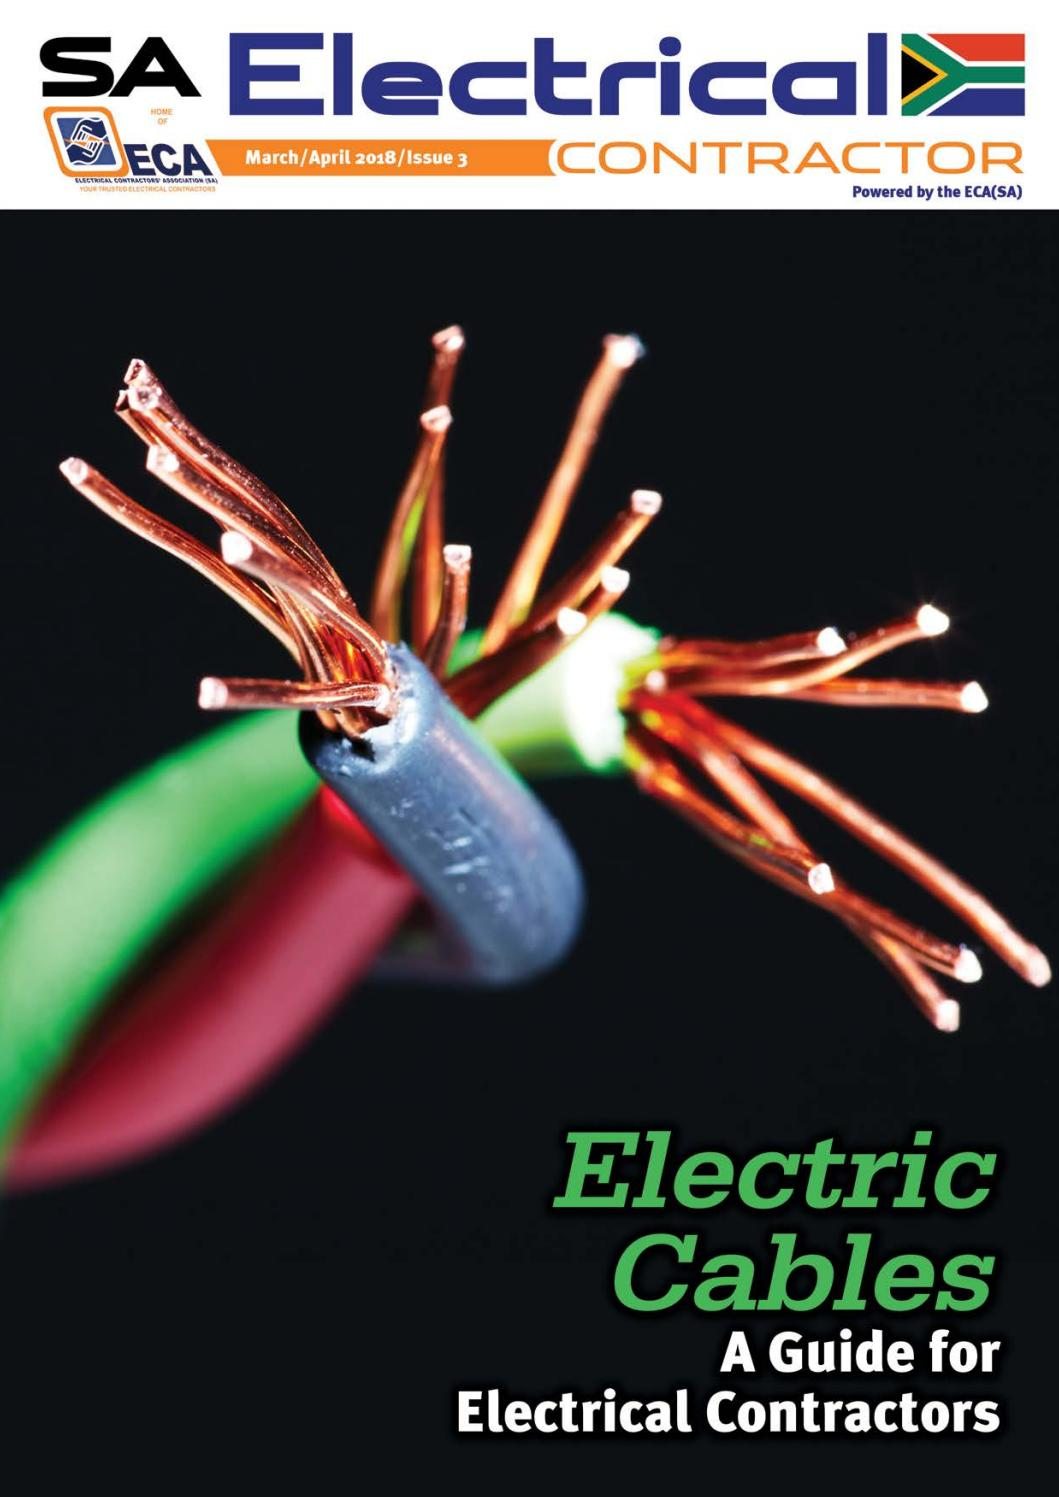 SA Electrical Contractor March/April 2018 by European ... on